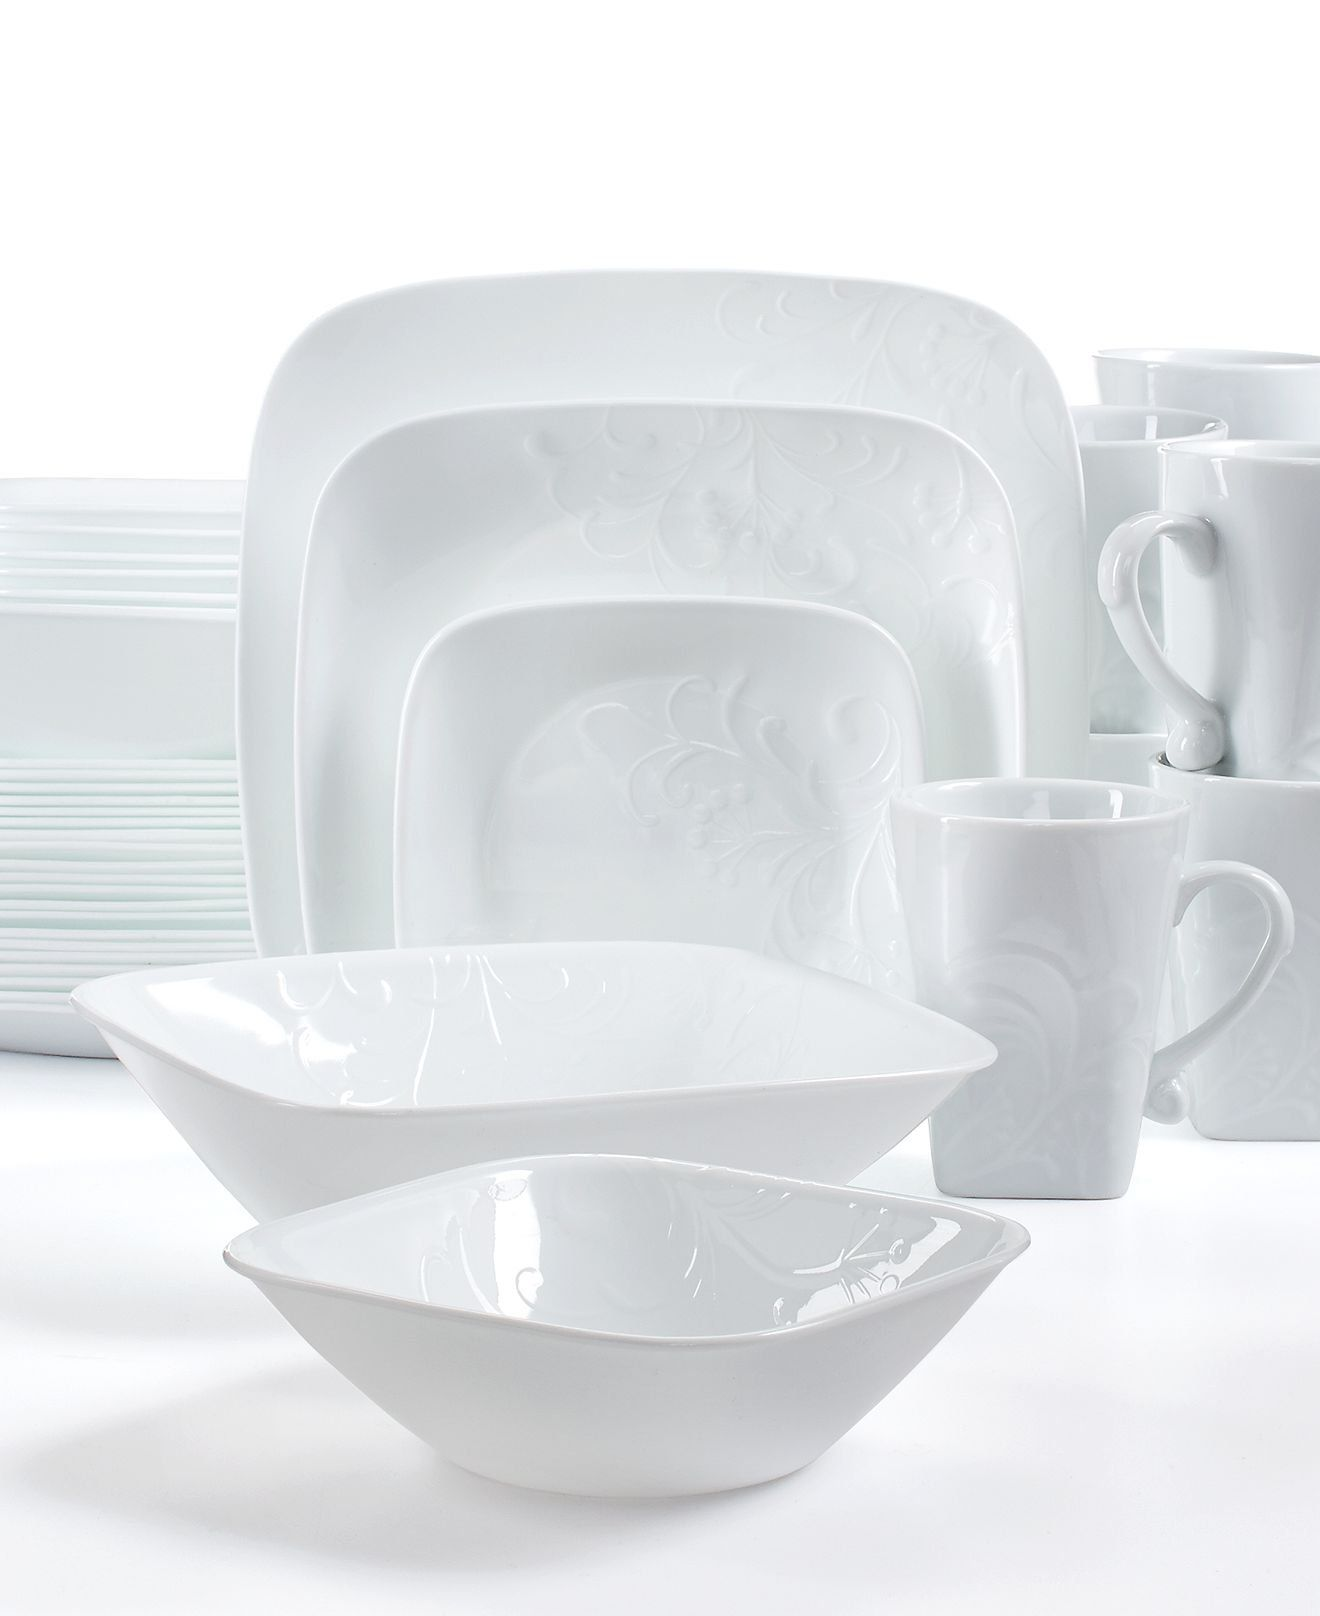 White Dinnerware 42 Piece Set Including Serving Bowls Plates Cups Dishes Corelle Boutique Cherish Embossed Square Stackable Corelle Dinnerware Sets Dinnerware